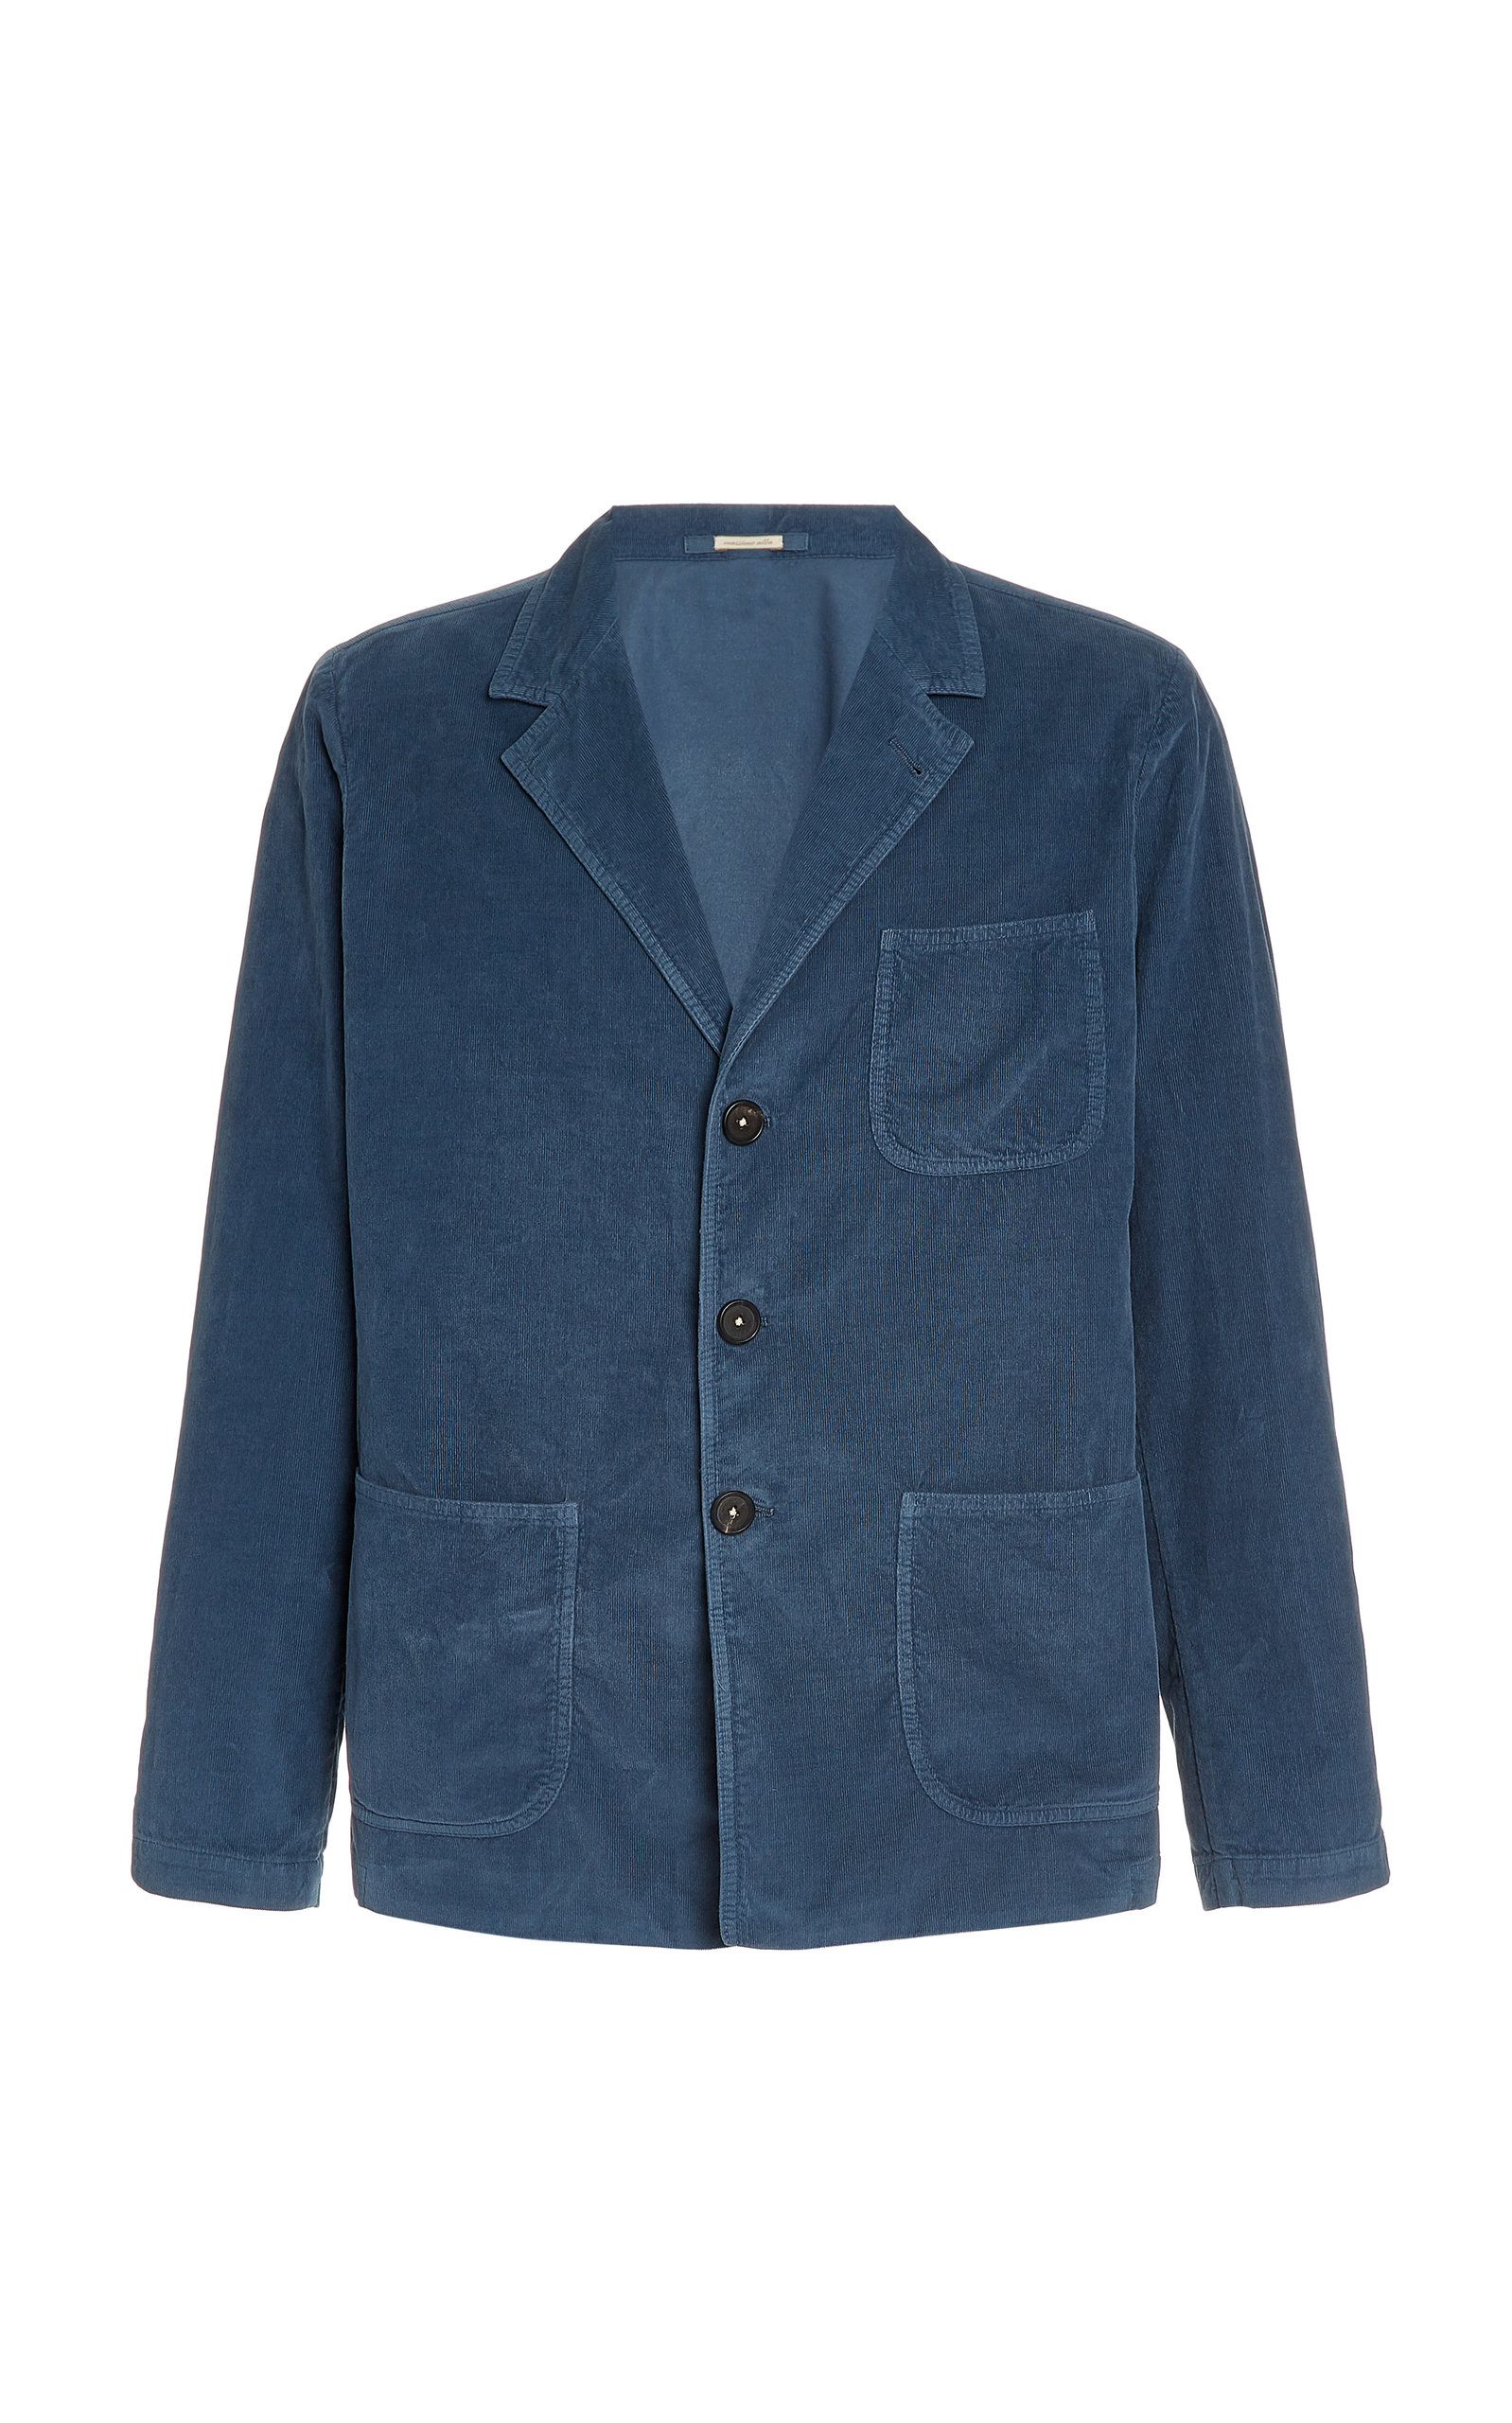 Massimo Alba Jackets SINGLE-BREASTED CORDUROY BLAZER